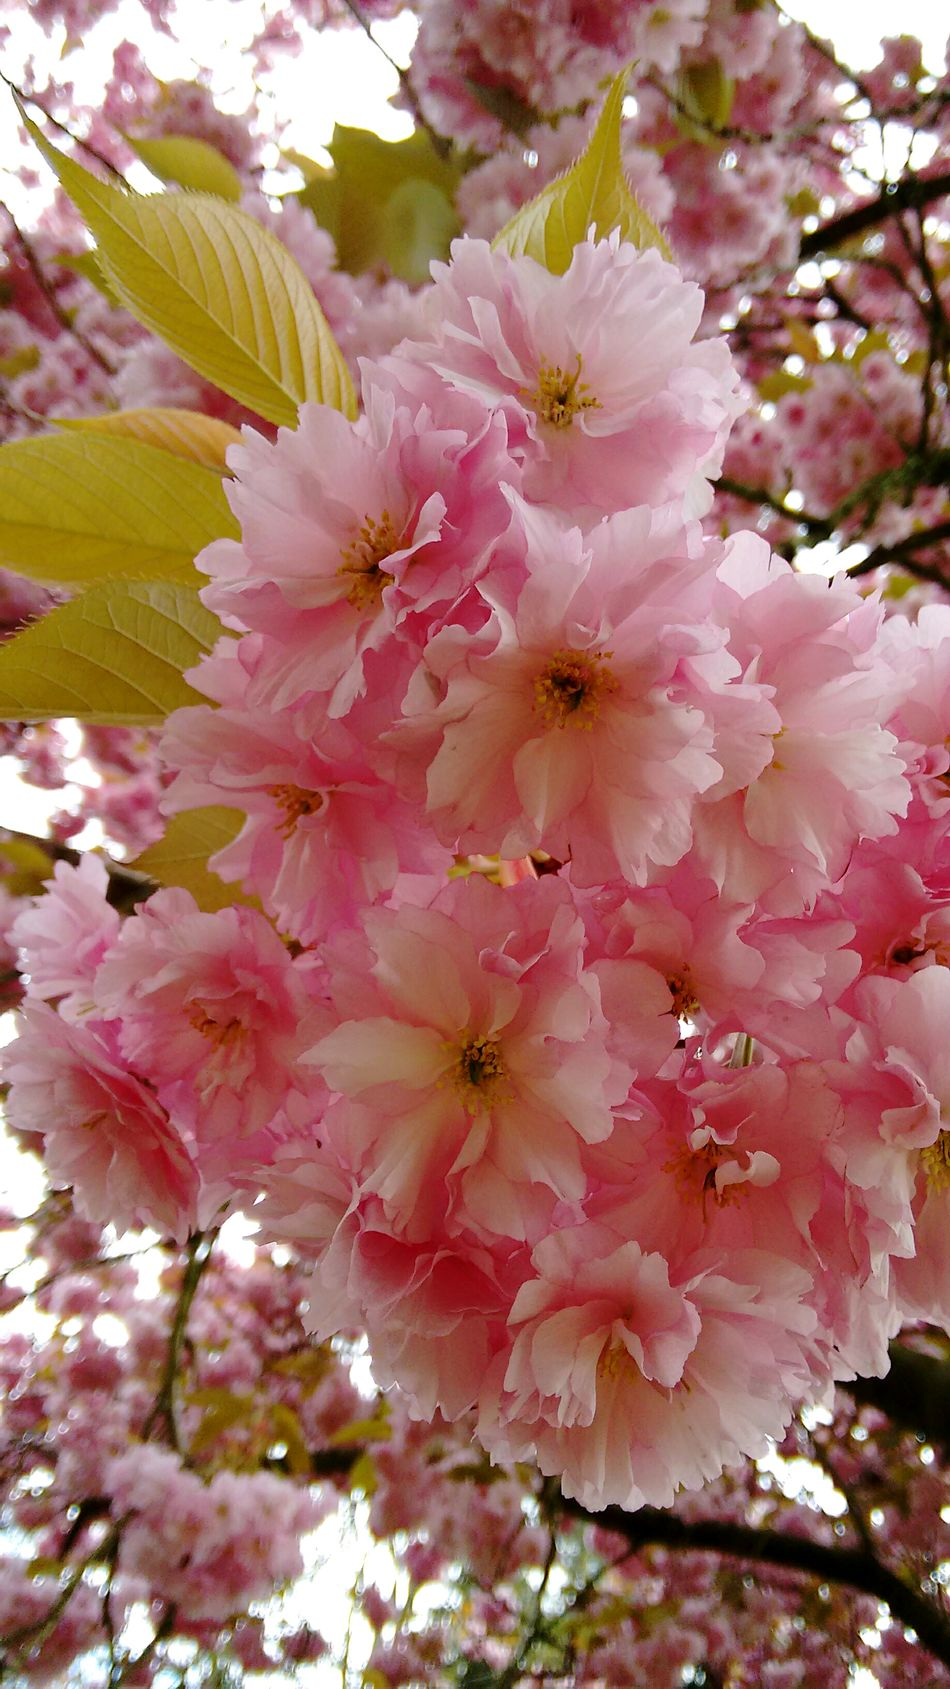 Flower Nature Beauty In Nature Blossom Pink Color Fragility Freshness Botany No People Growth Plant Close-up Springtime Outdoors Petal Day Flower Head Tranquility Branch Tree EyeEm Nature Lovers Nature_collection Cherry Blossoms